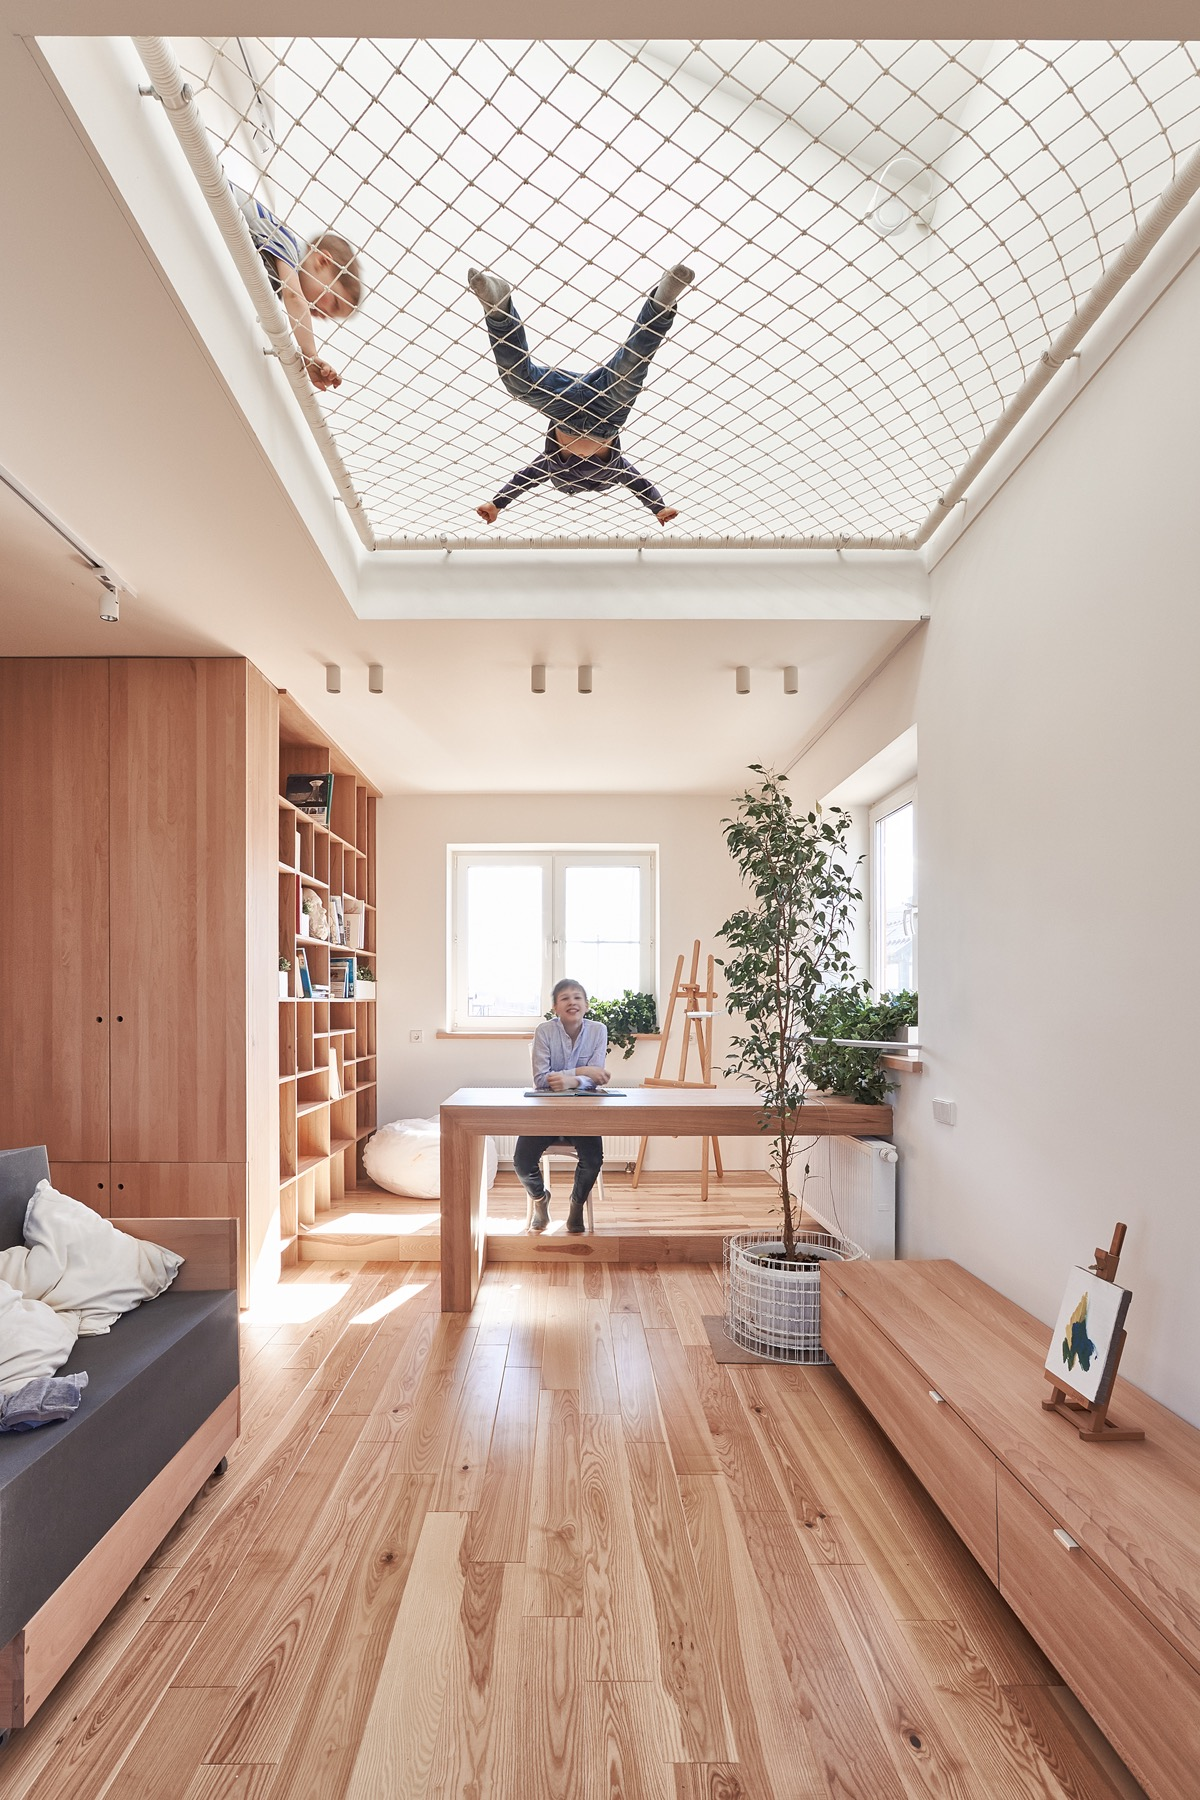 Kid Friendly Design - A white and wood house for a stylish family